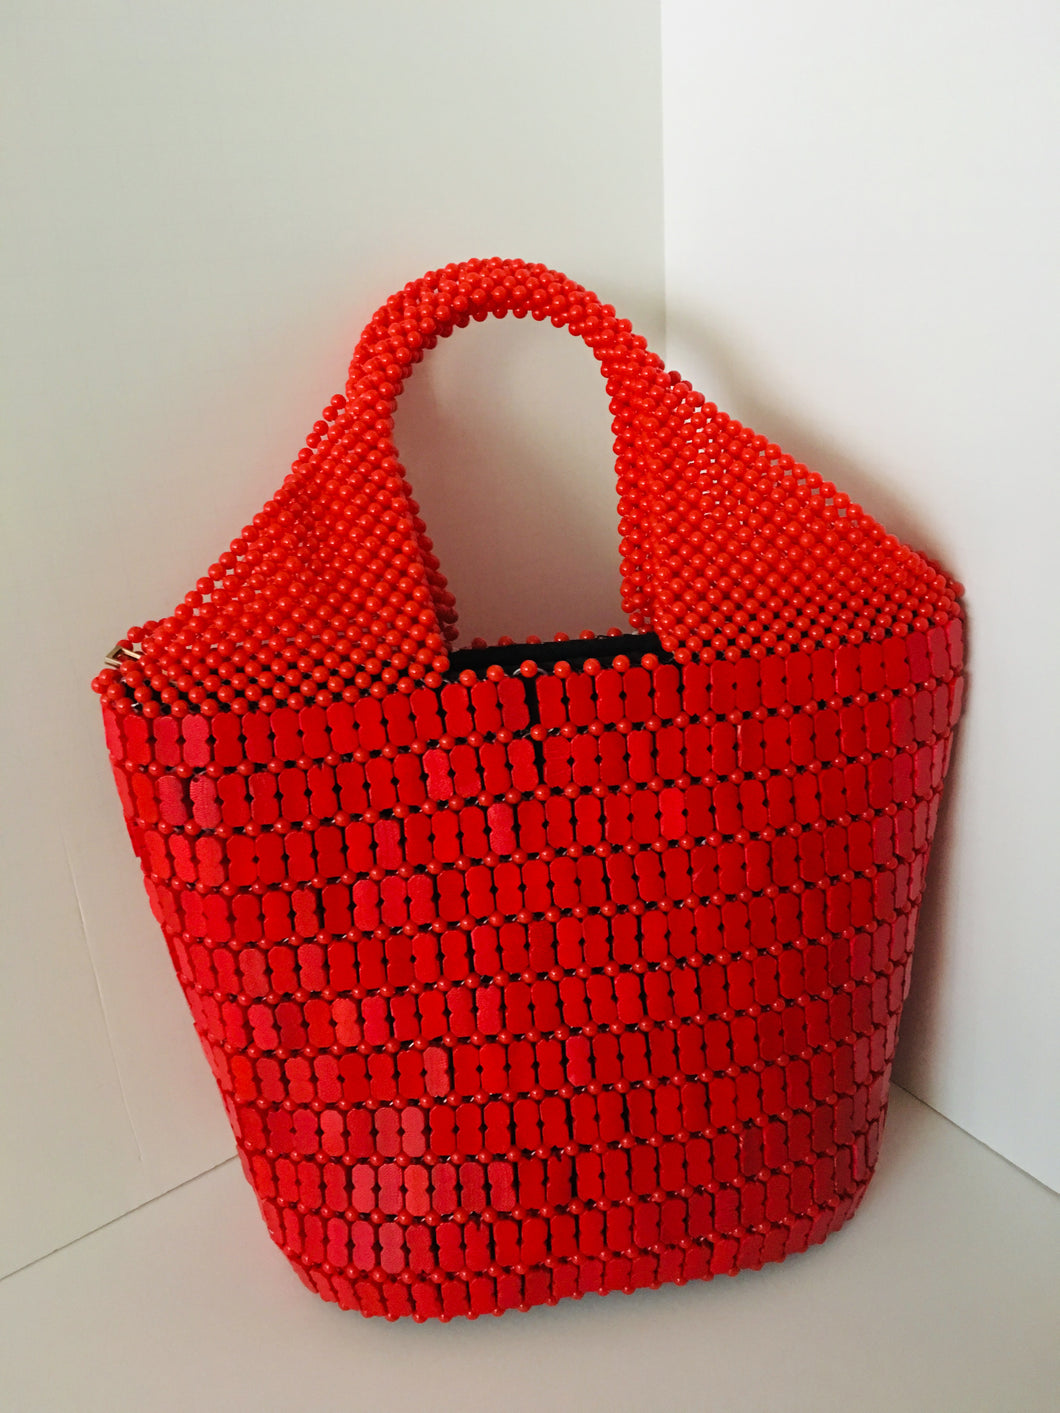 Solid Red Handcrafted Beaded Handbag